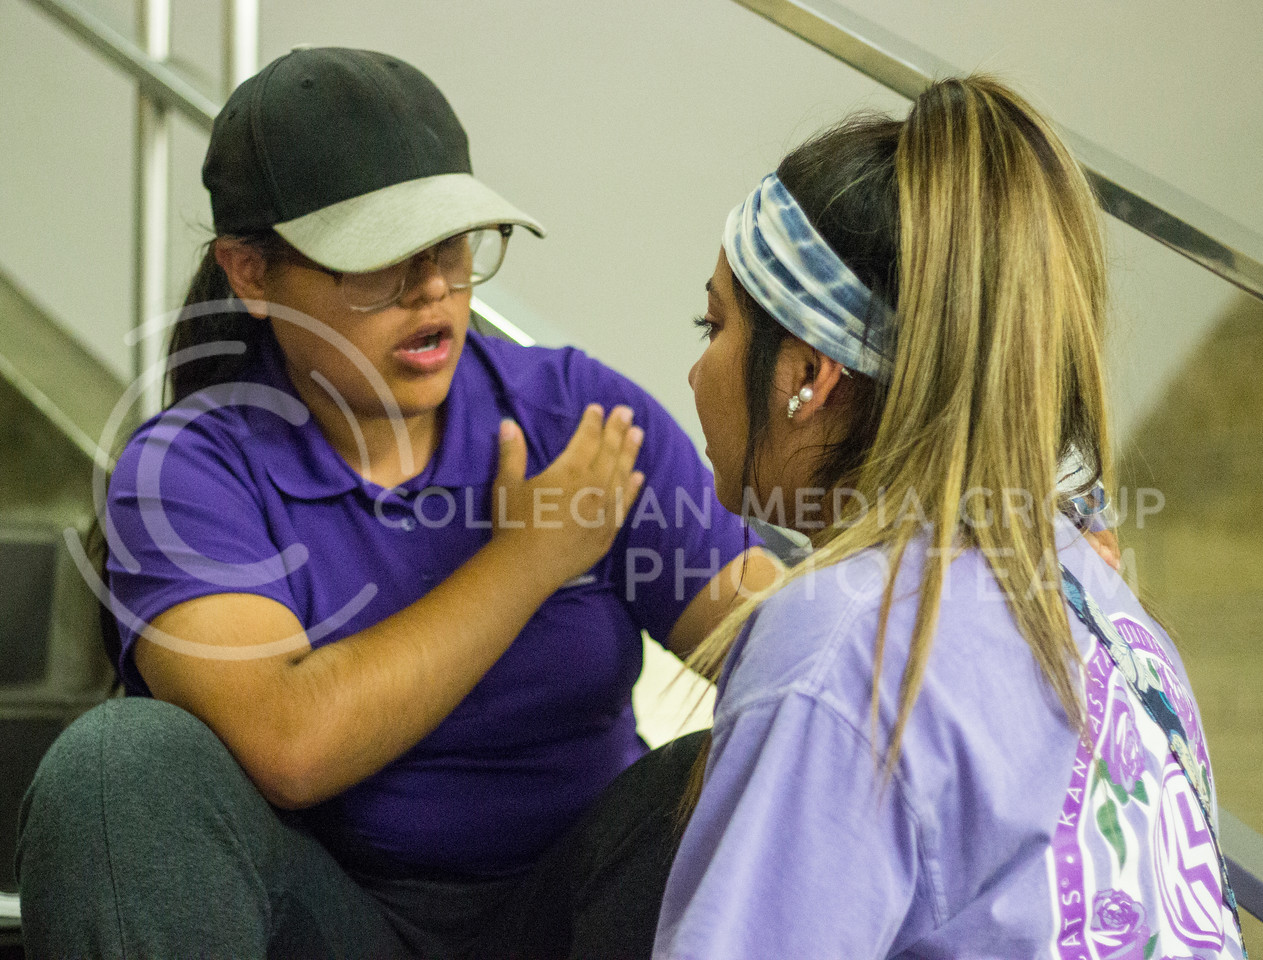 Sophomore Leslie Ramirez comforts Freshman Monica Romero as things got emotional at the Solidarity rally at the Bosco Plaza on Sept. 14th, 2017. (Kelly Pham | The Collegian)